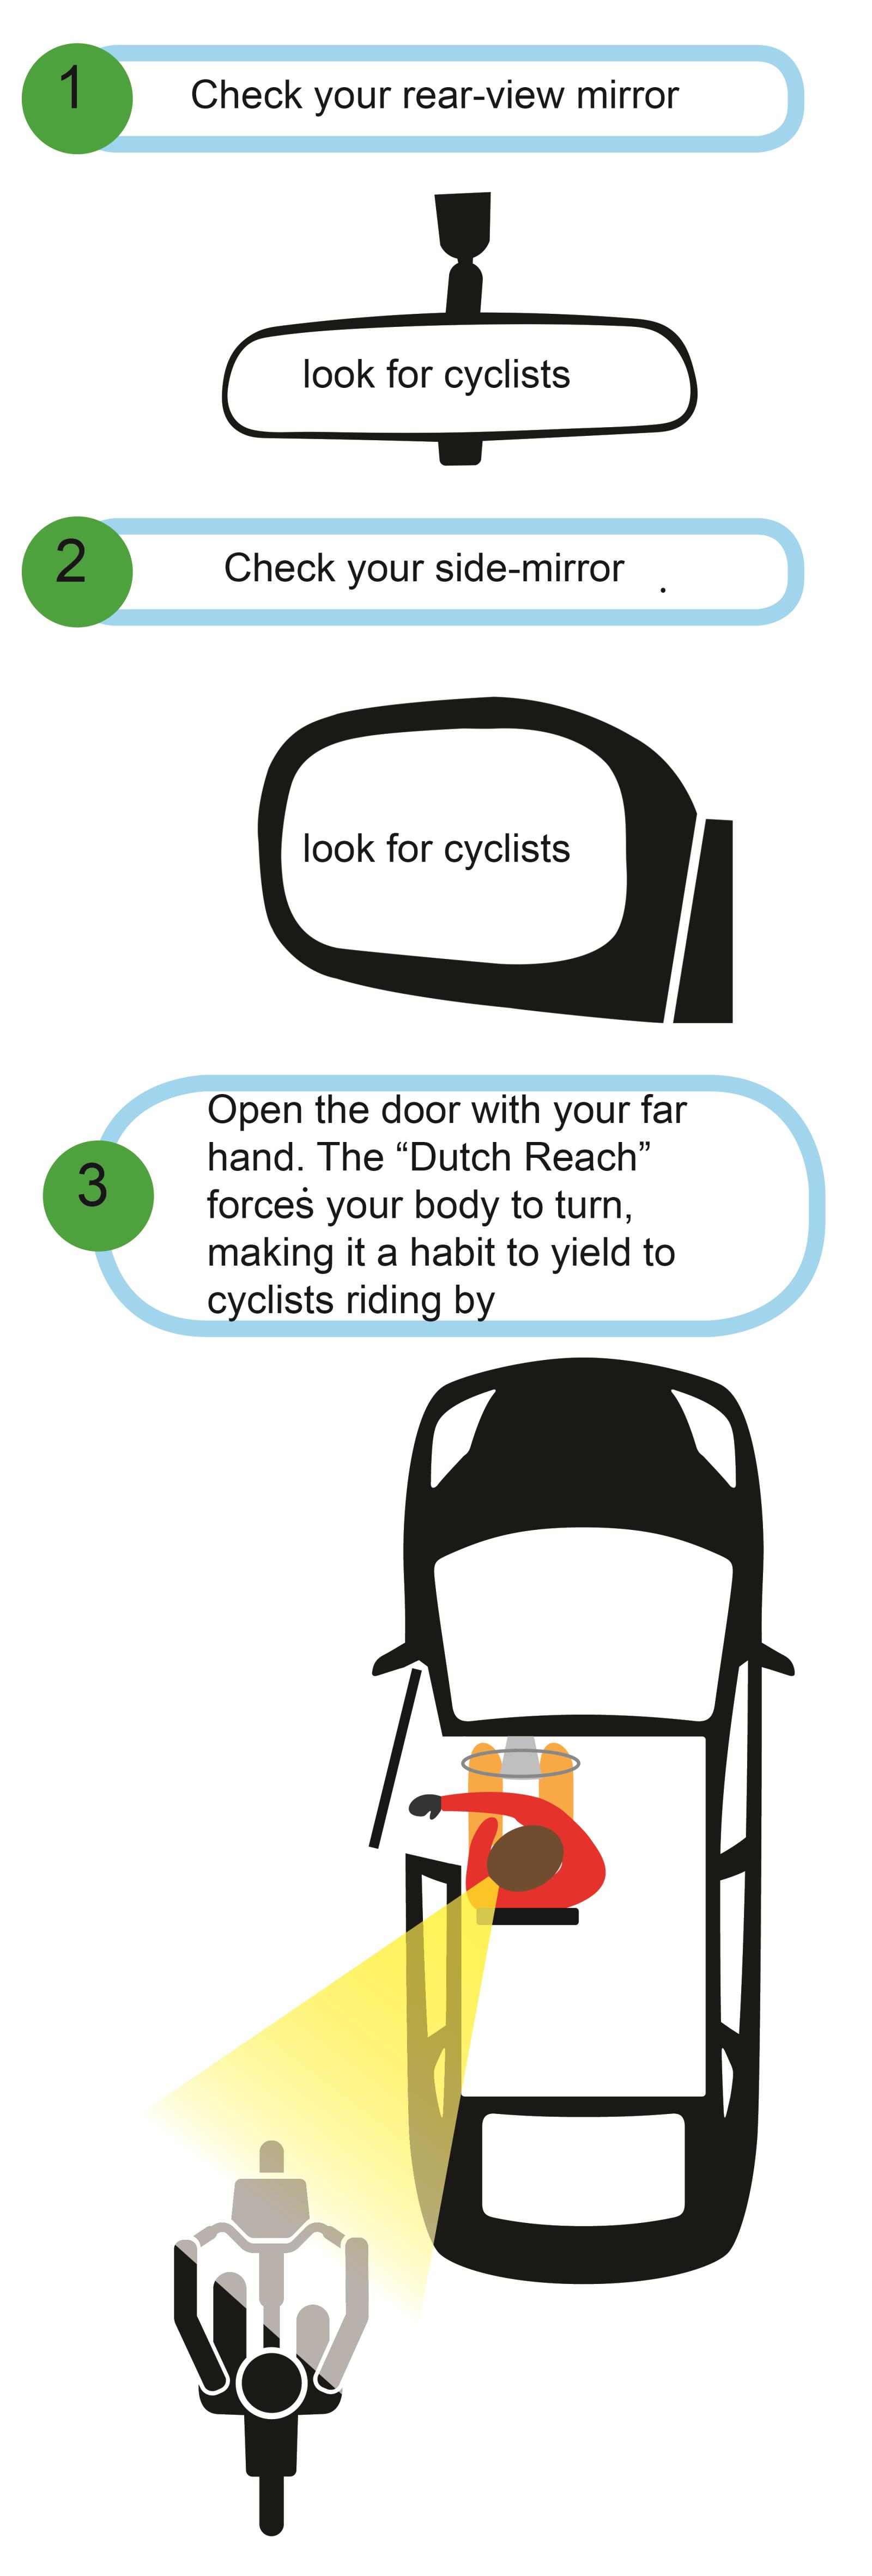 Check for cyclists